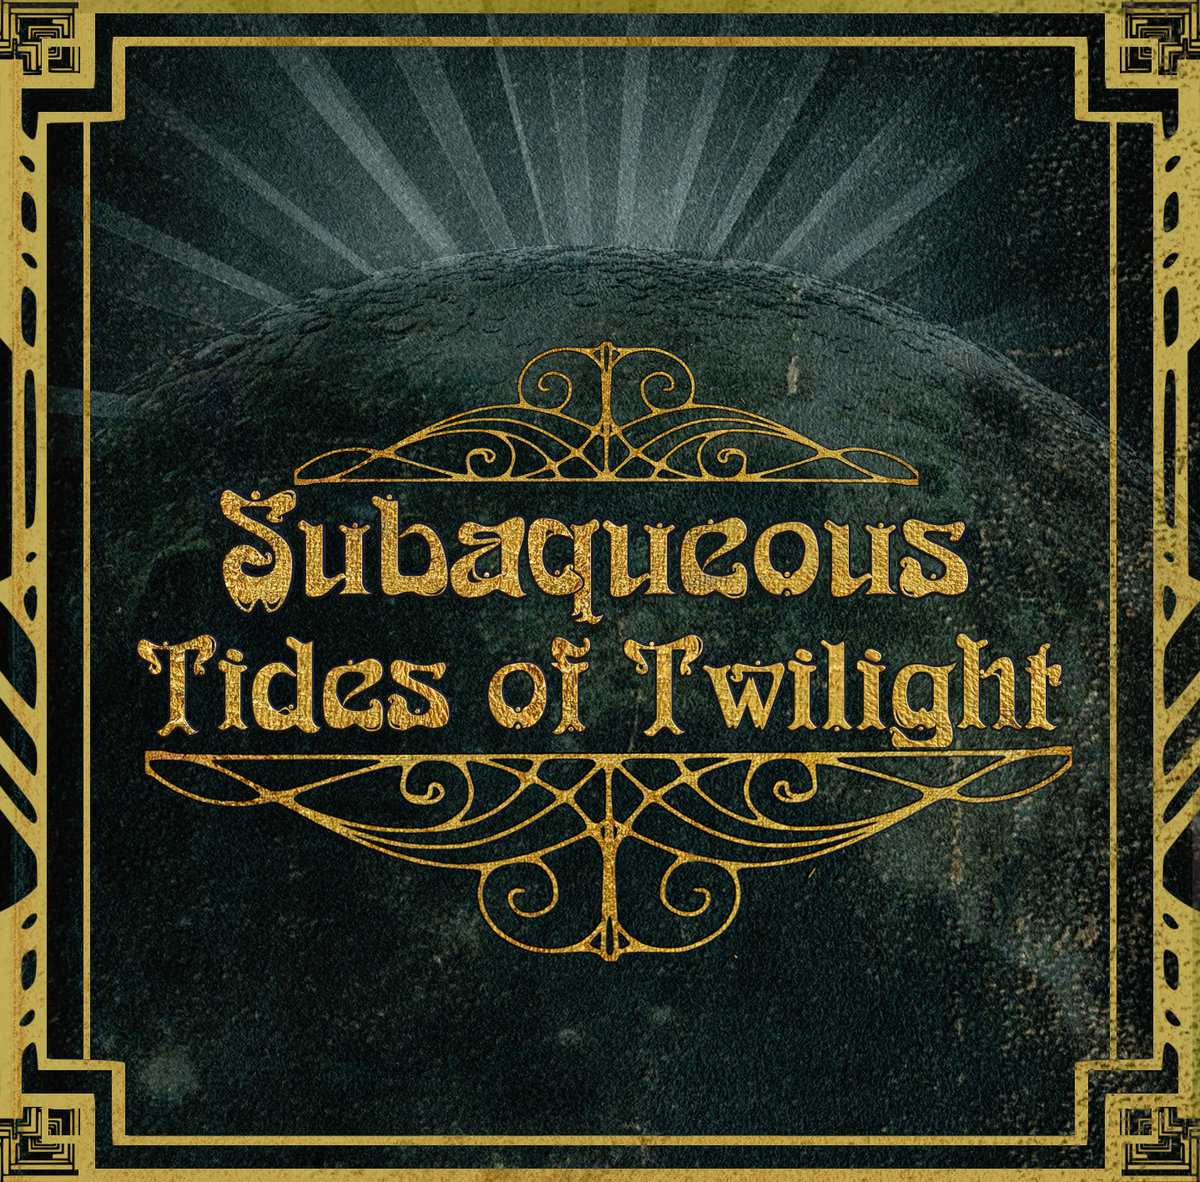 Subaqueous - Tides of Twilight